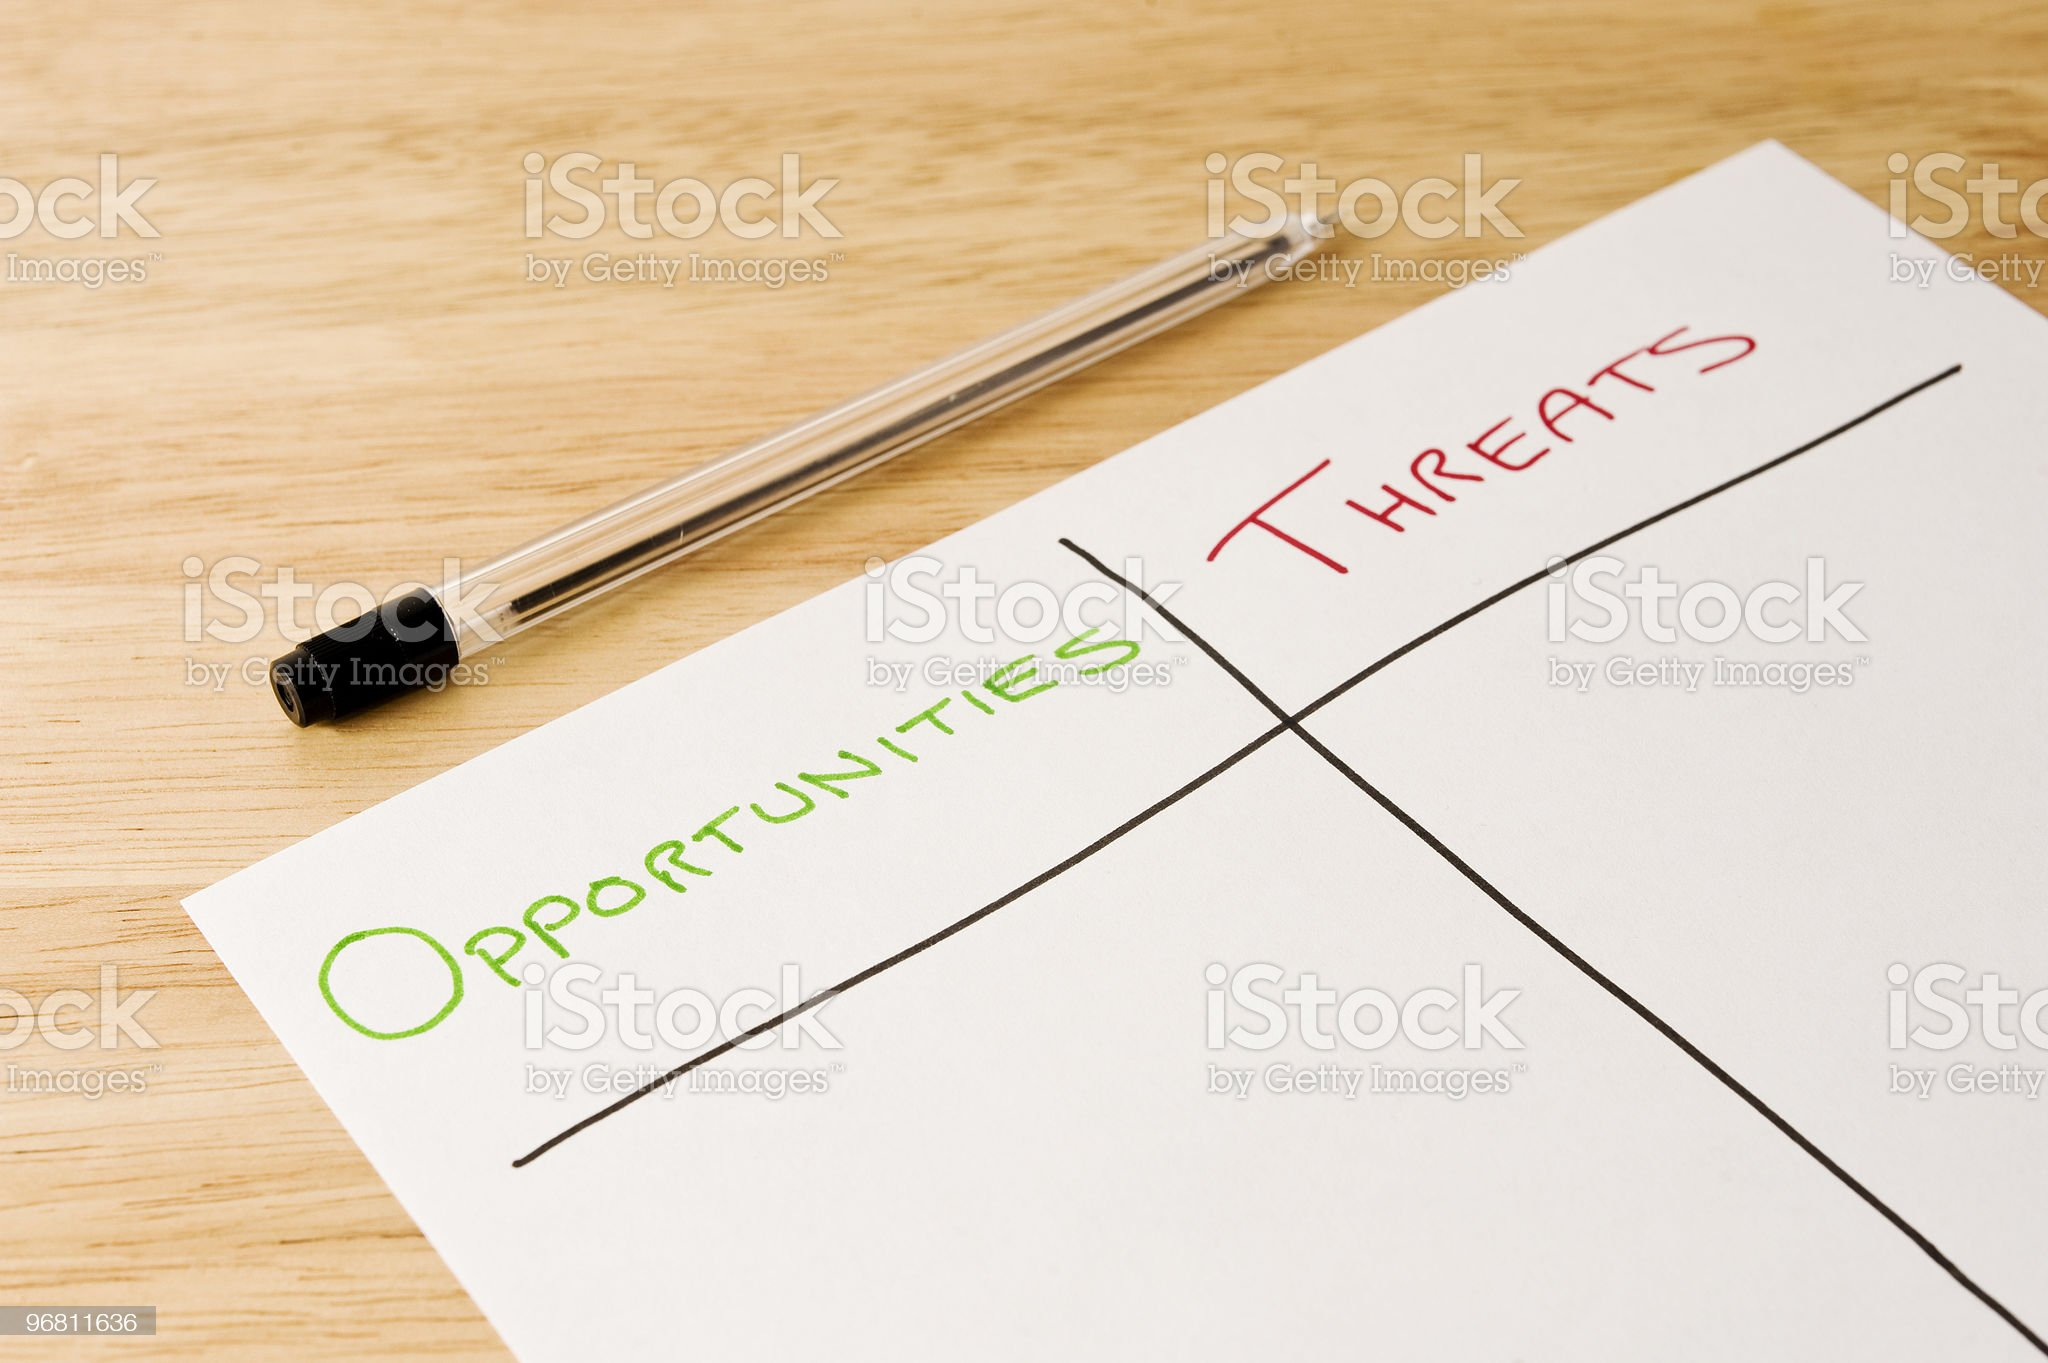 Opportunities and Threats royalty-free stock photo